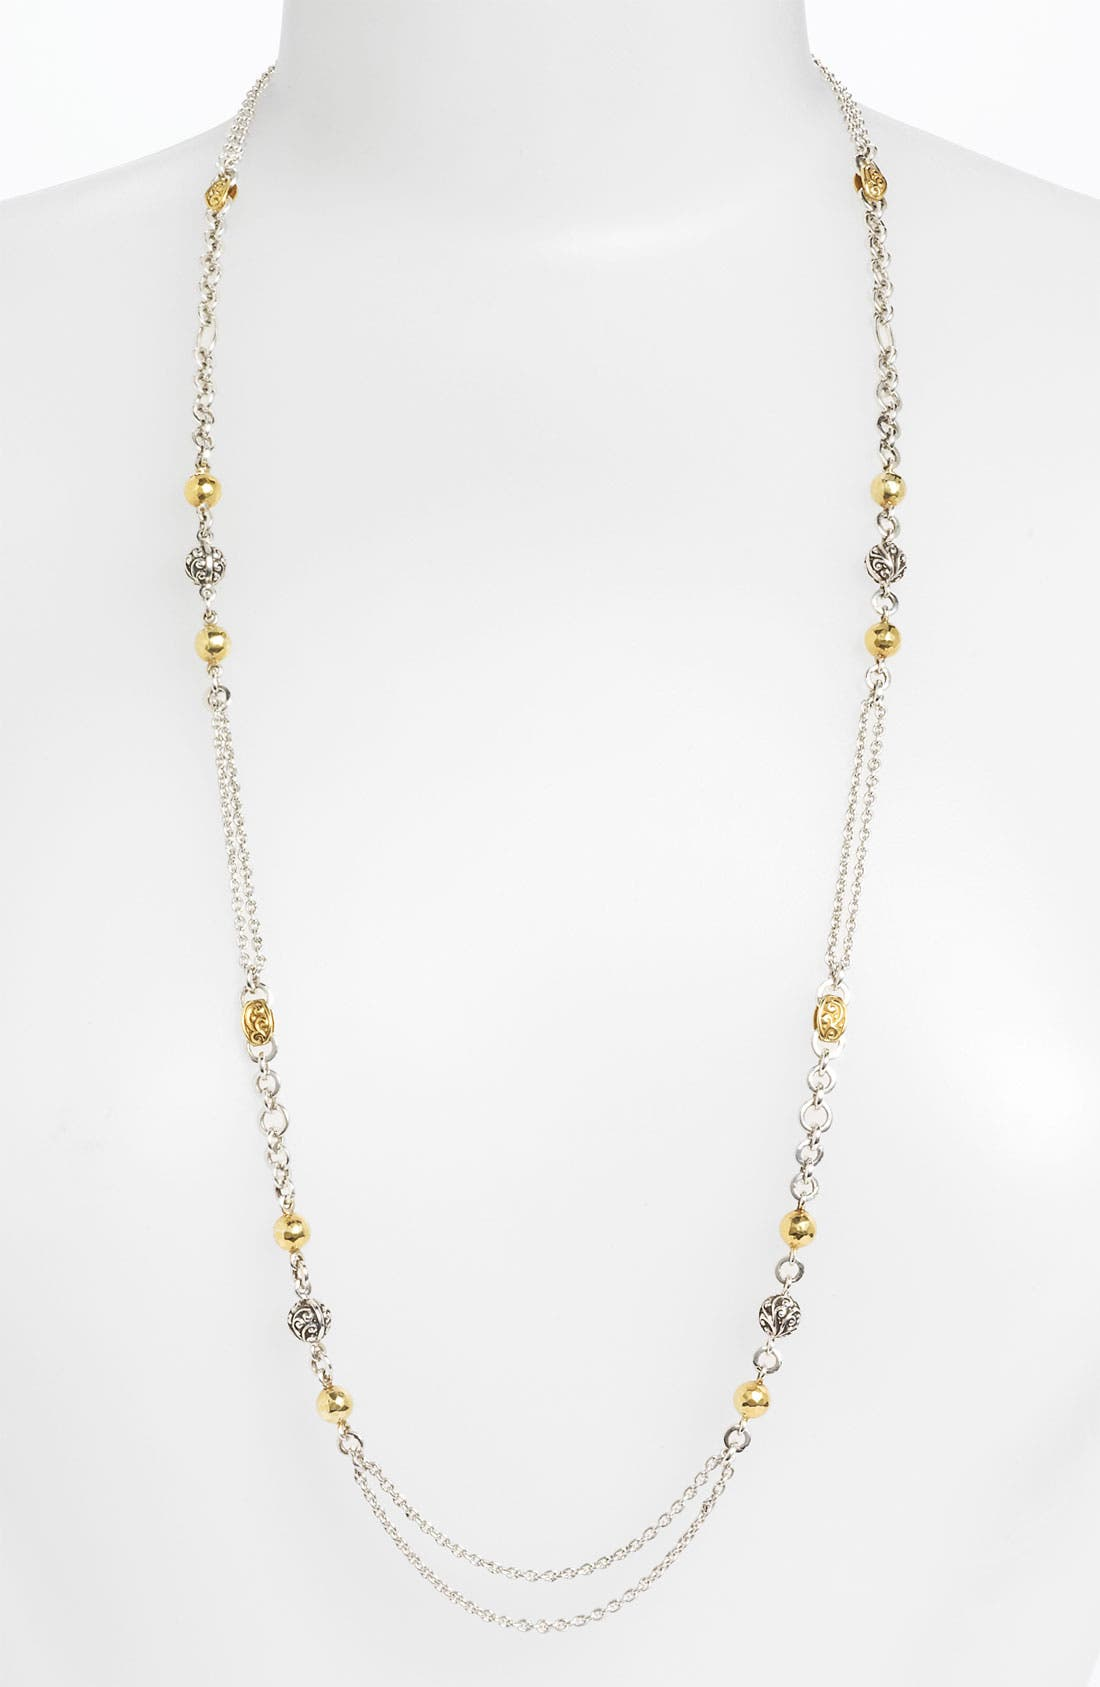 Main Image - Lois Hill 'Repousse' Two Tone Long Strand Necklace